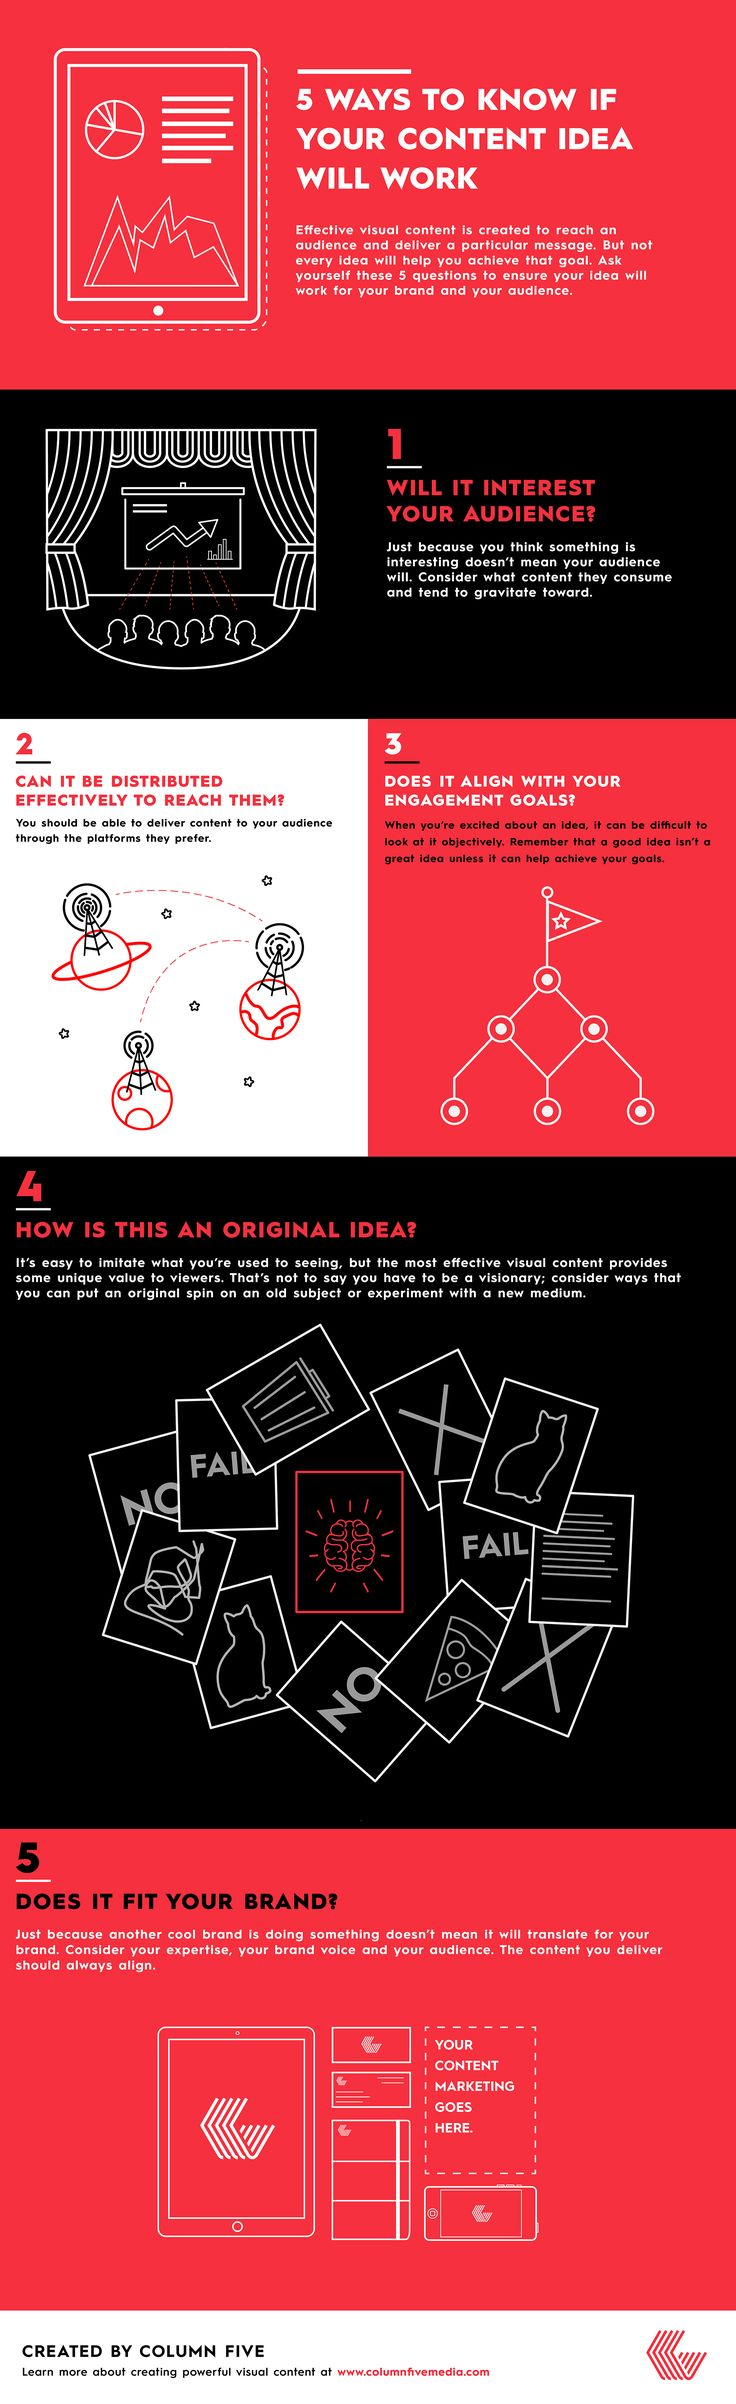 5 ways to know if your content idea will work